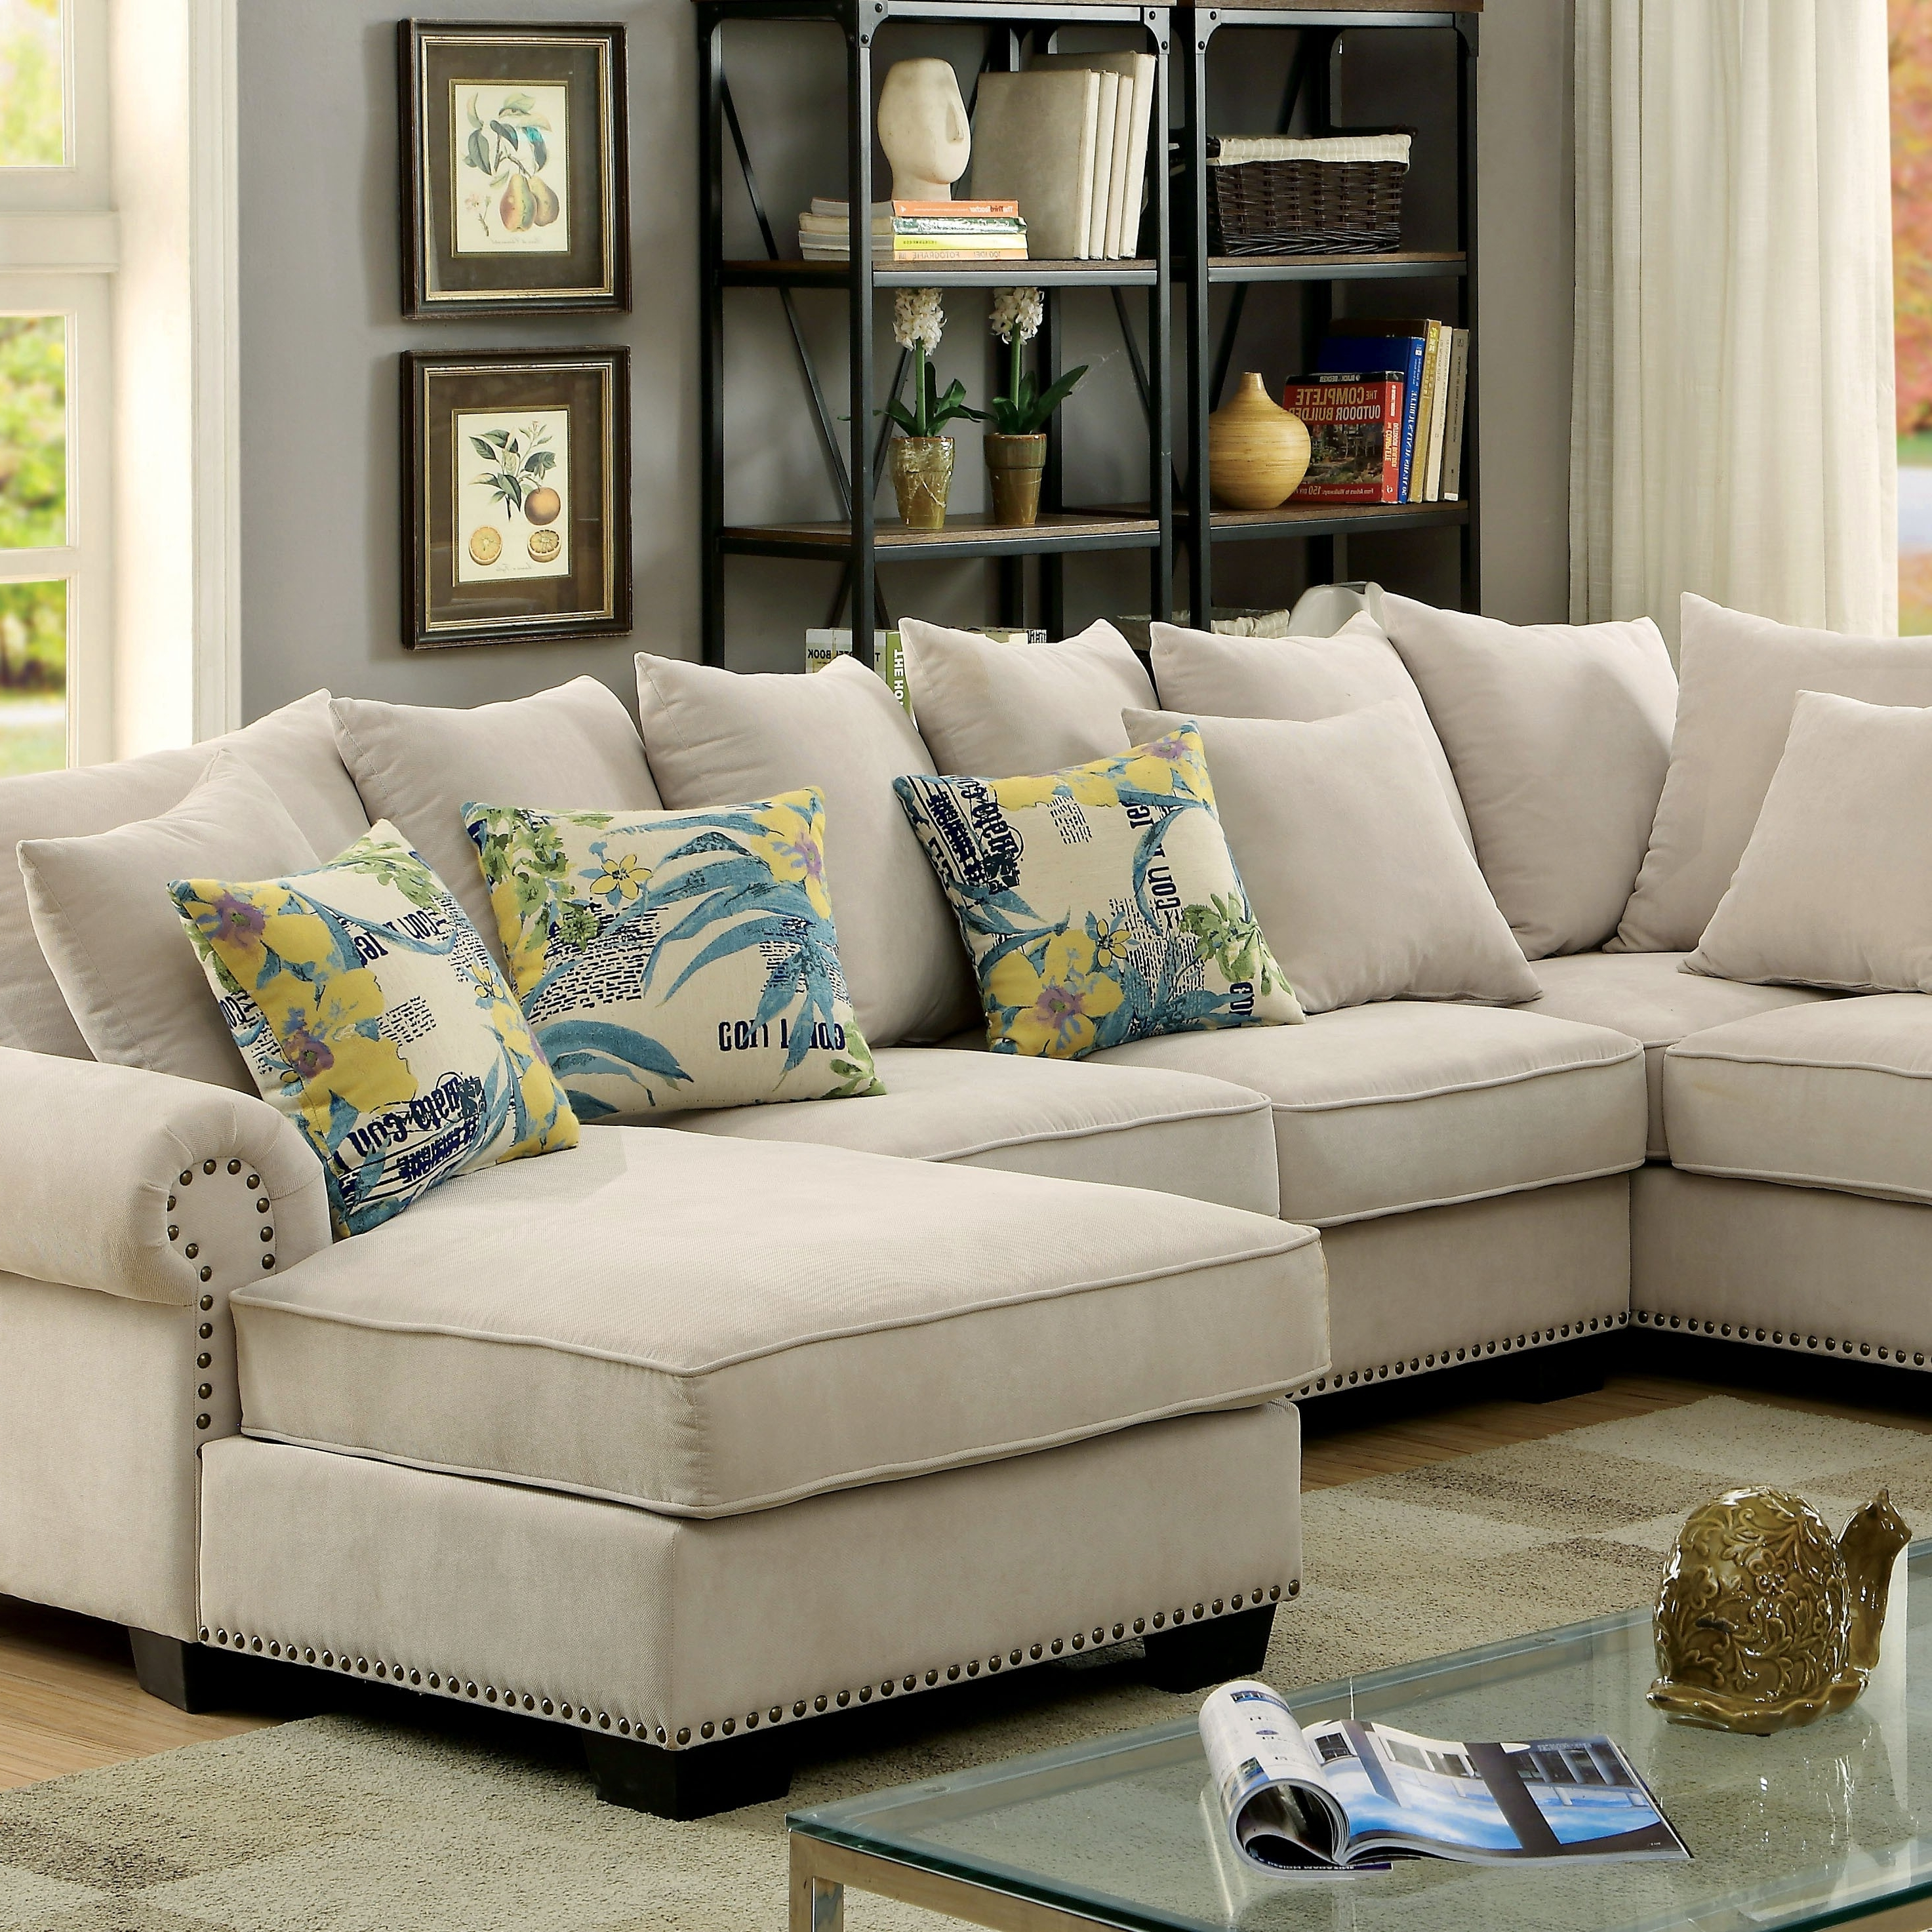 Best And Newest Skyler Transitional Ivory Fabric Sectional Sofa Couch – Shop For With Fabric Sectional Sofas (View 5 of 20)